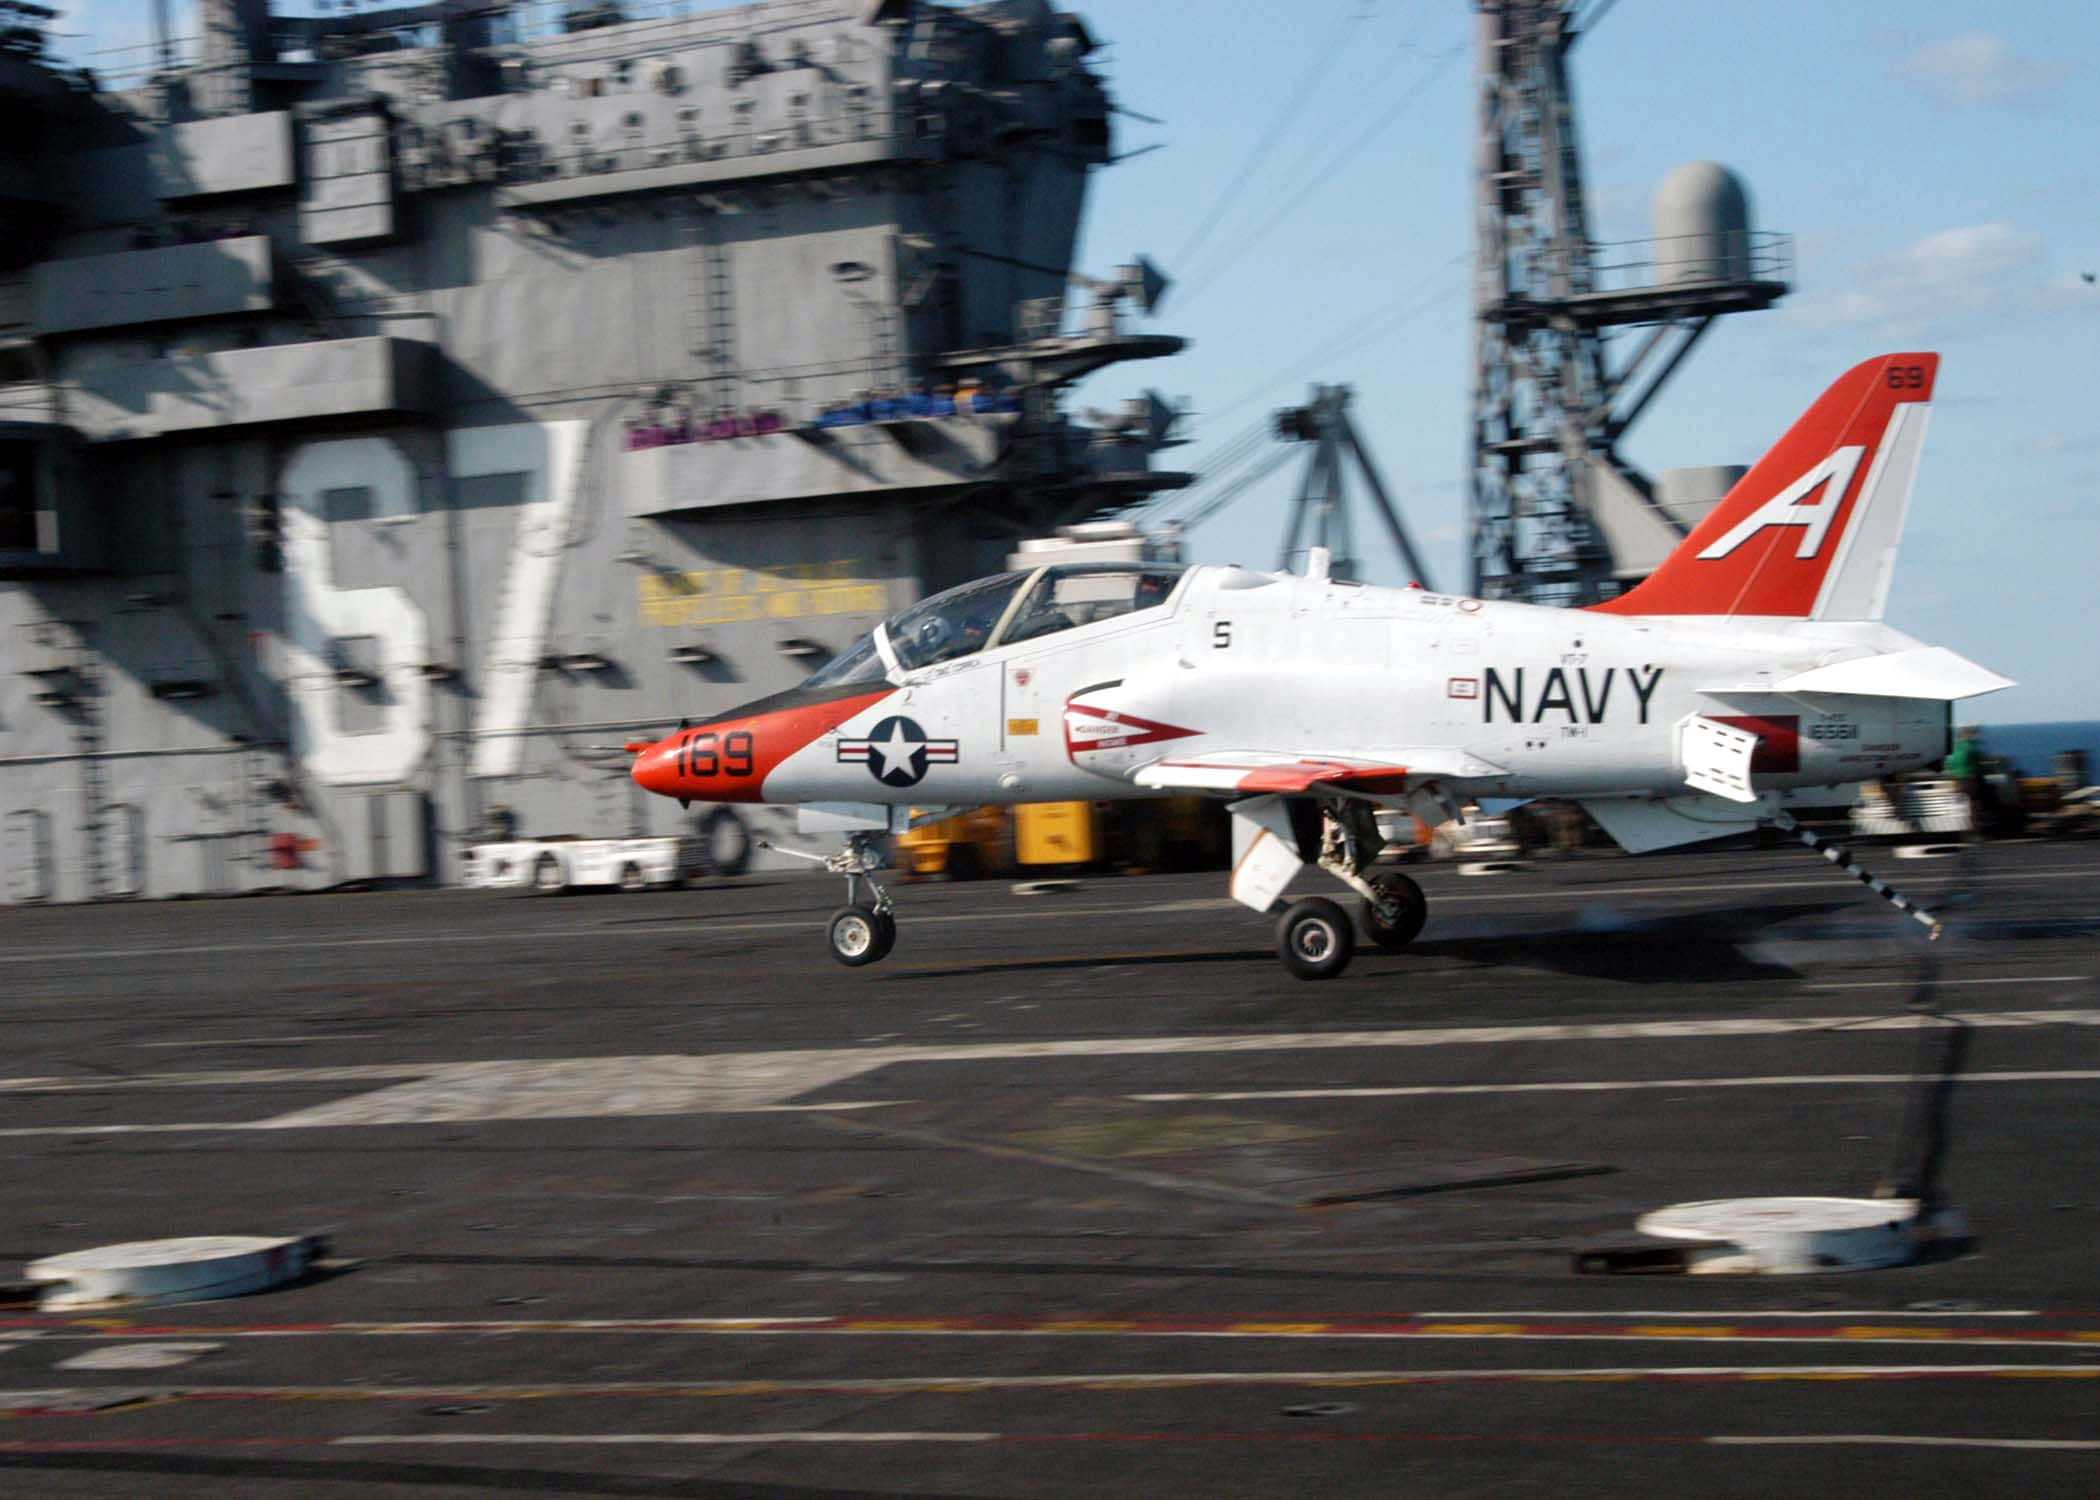 T-45C Goshawk - Atlantic Ocean (Apr. 17, 2004) - Lt.j.g. Julin Rosemand, assigned to Fixed Wing Training Squadron One (VT-1), completes a successful landing in a T-45C Goshawk aboard USS John F. Kennedy (CV-67). VT-1 is going through Carrier Qualifications (CQ) as Kennedy is completing her final training prior to a scheduled upcoming deployment. U.S. Navy photo by Photographer